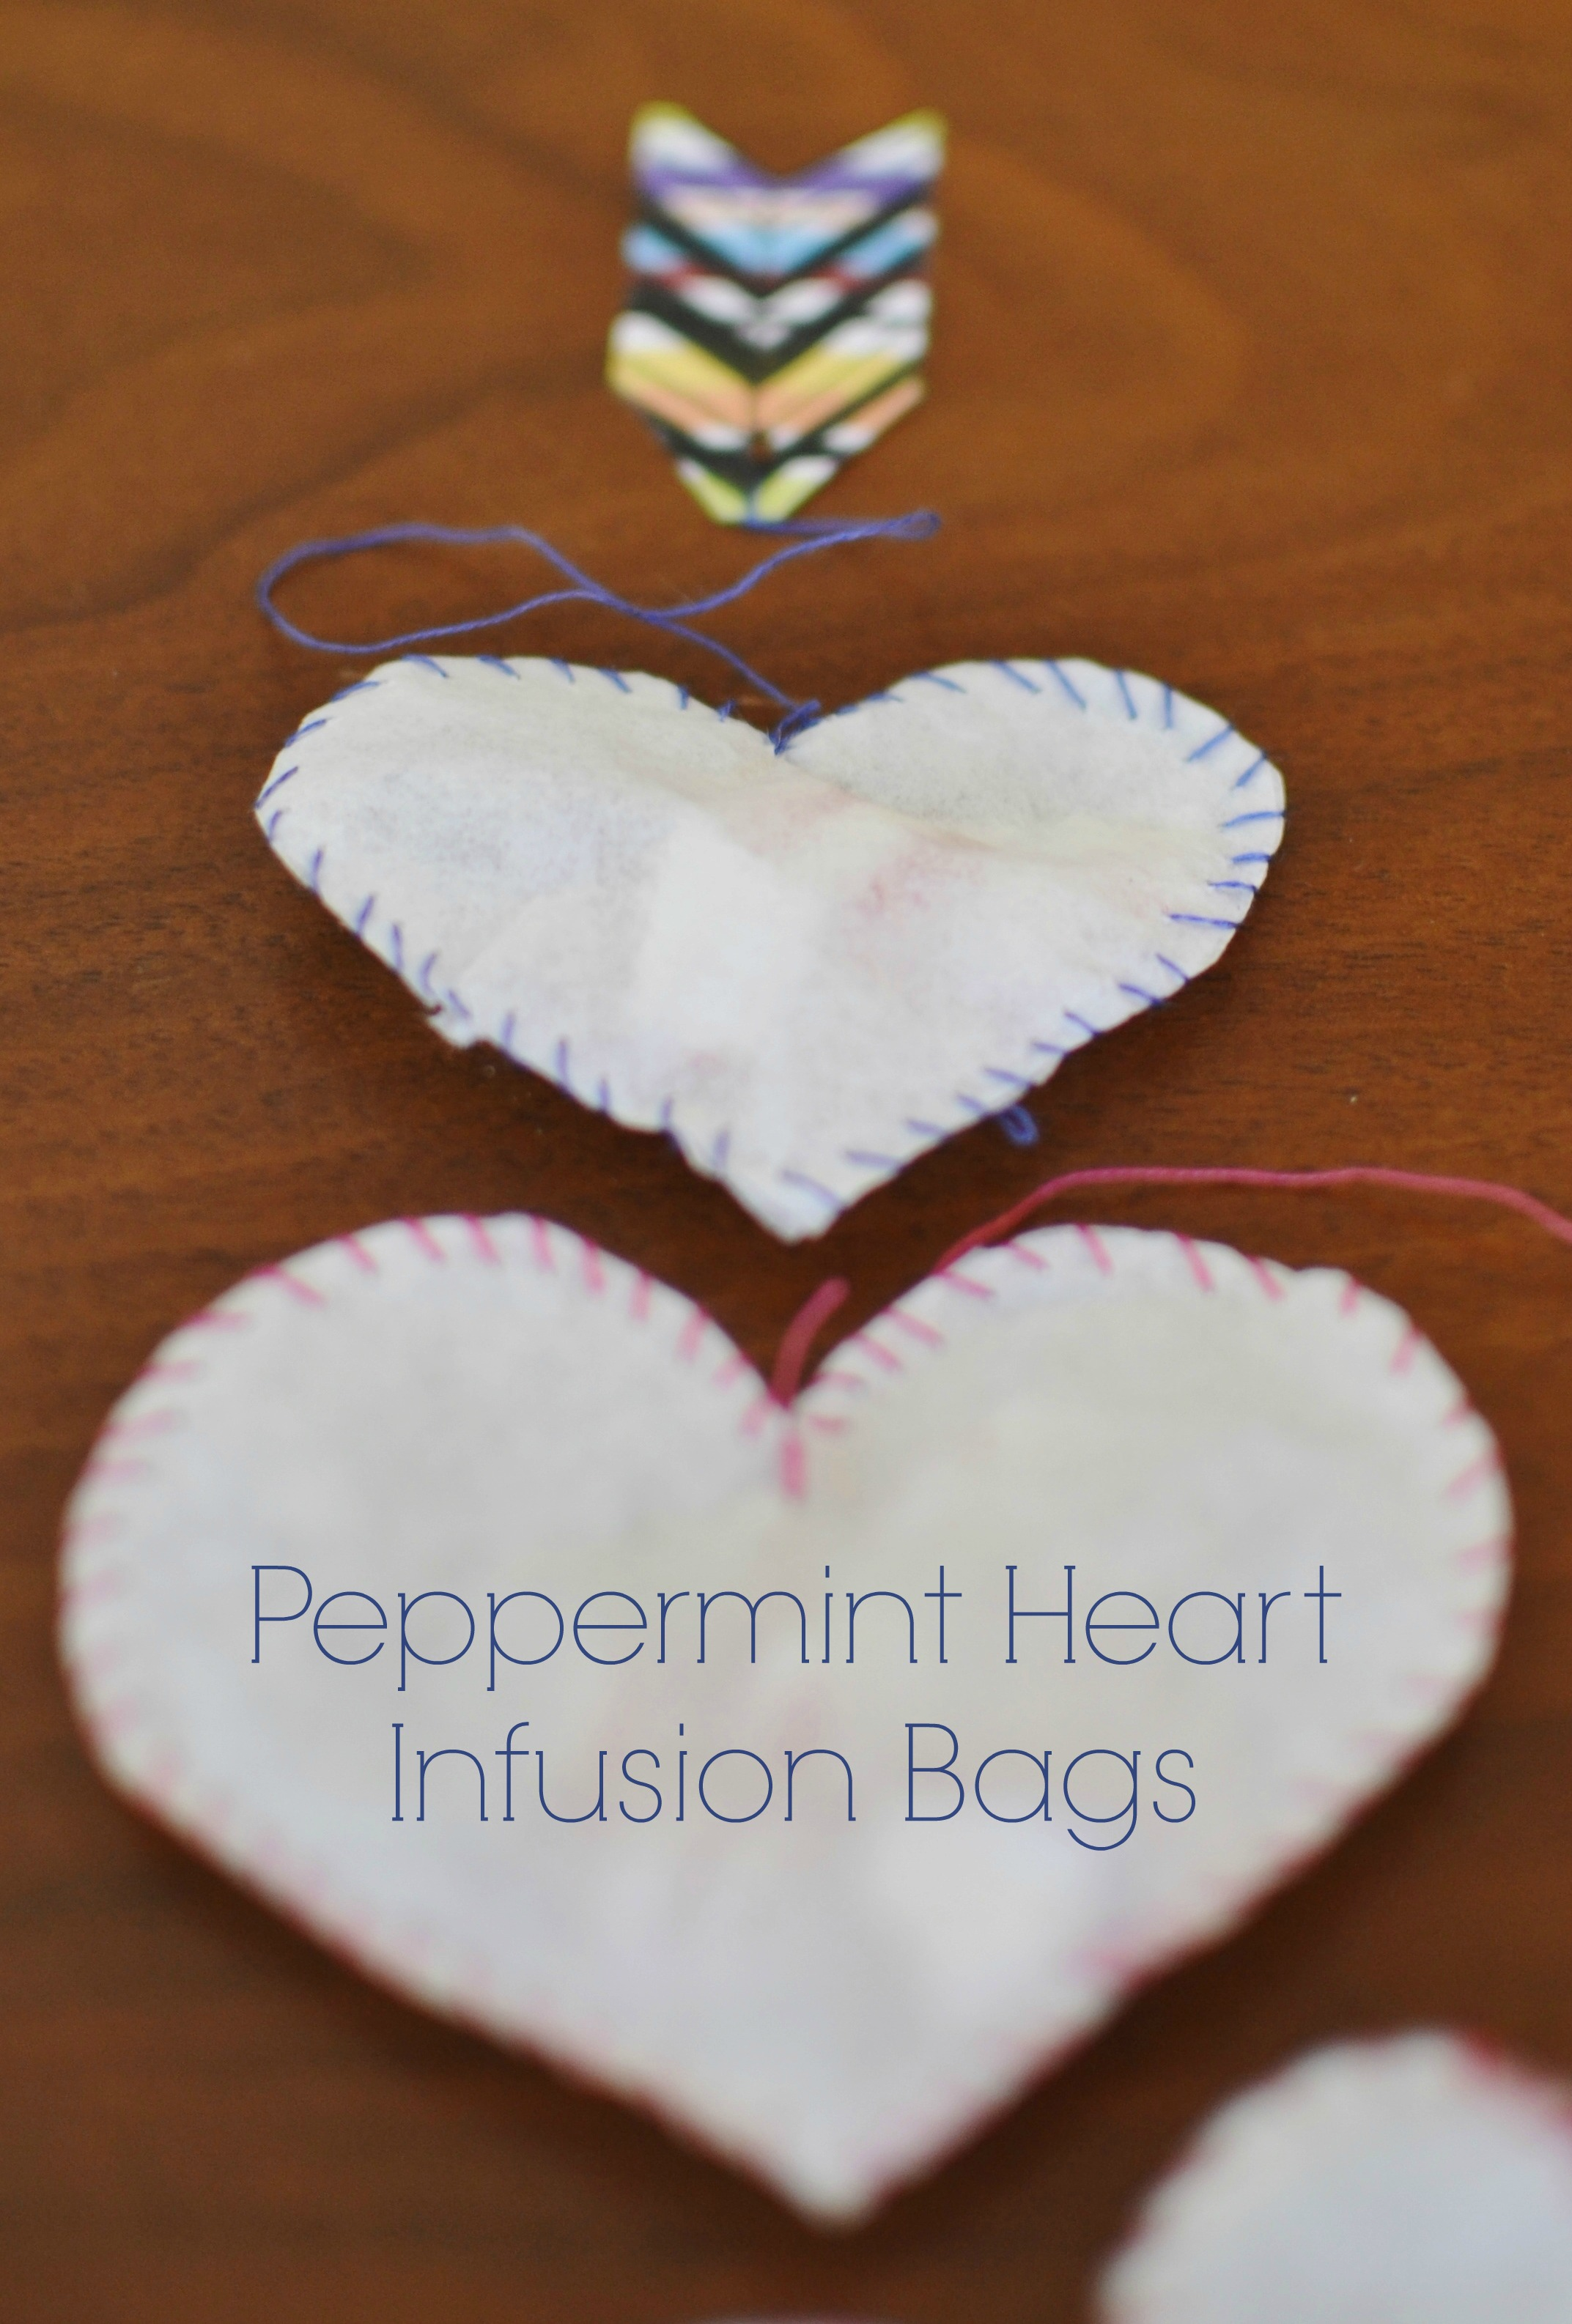 making peppermint heart infusion bags